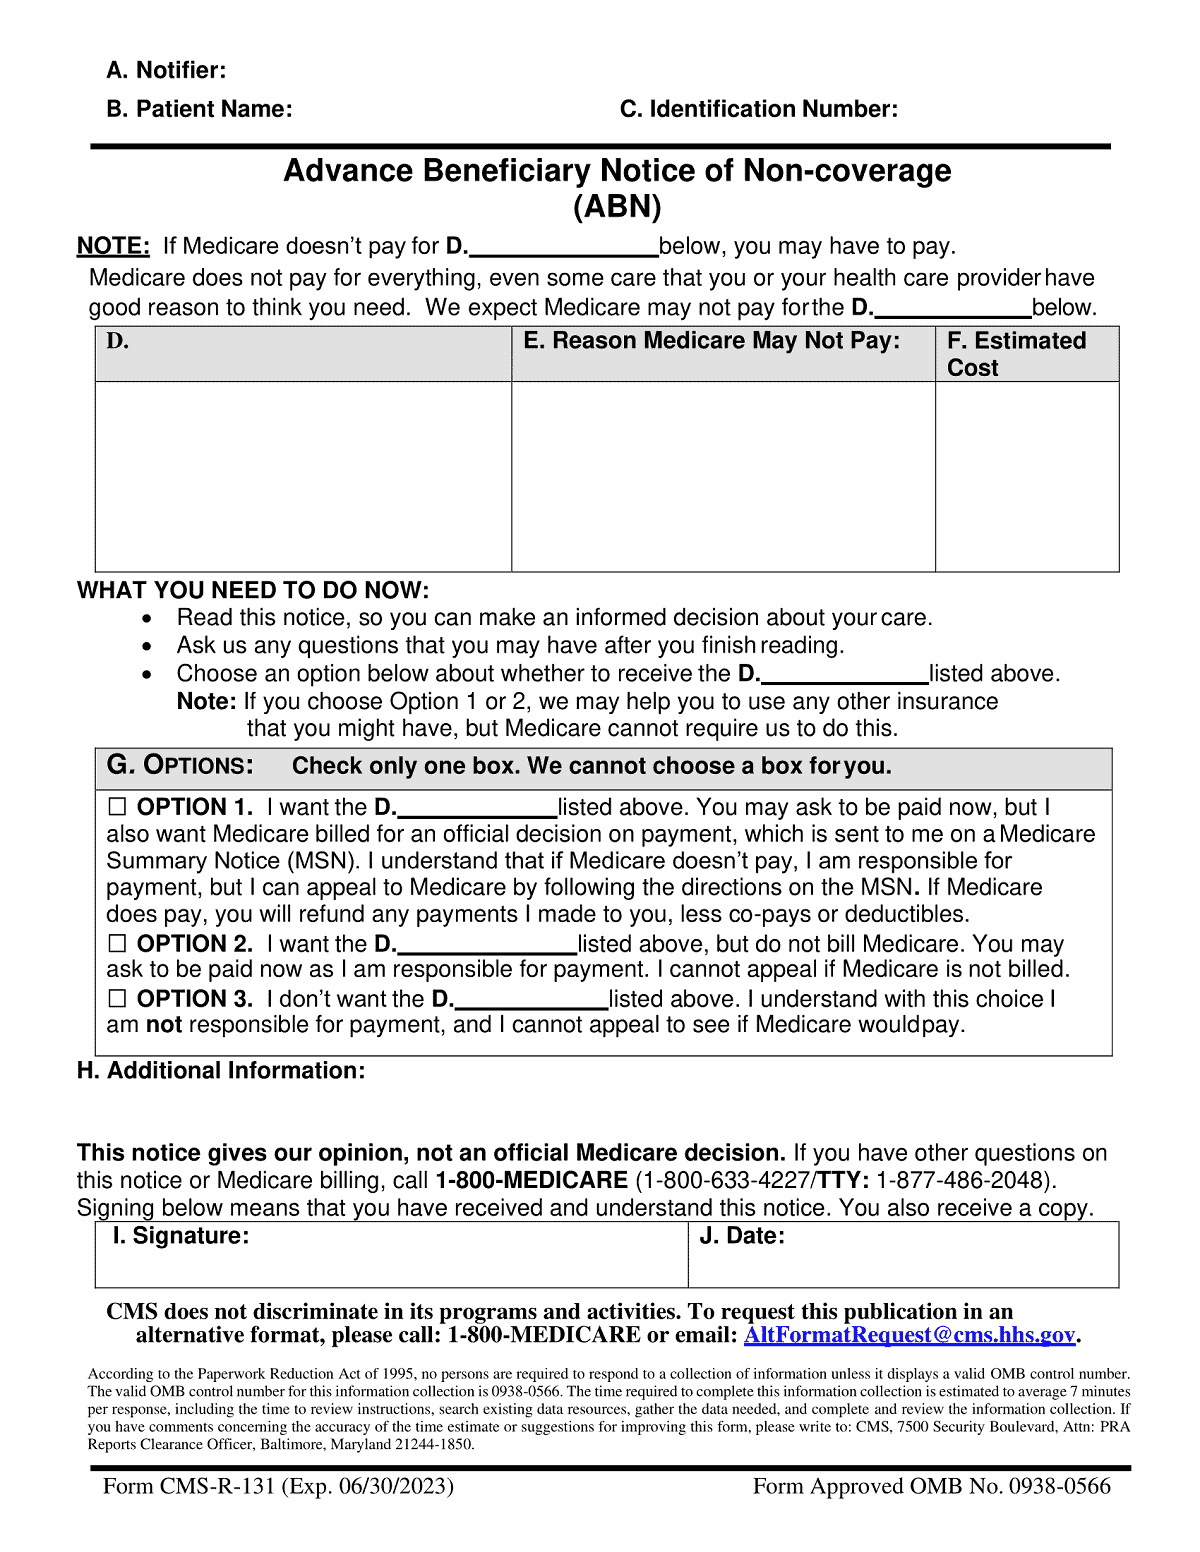 An Advance Beneficiary Notice (ABN) signed by Medicare beneficiaries